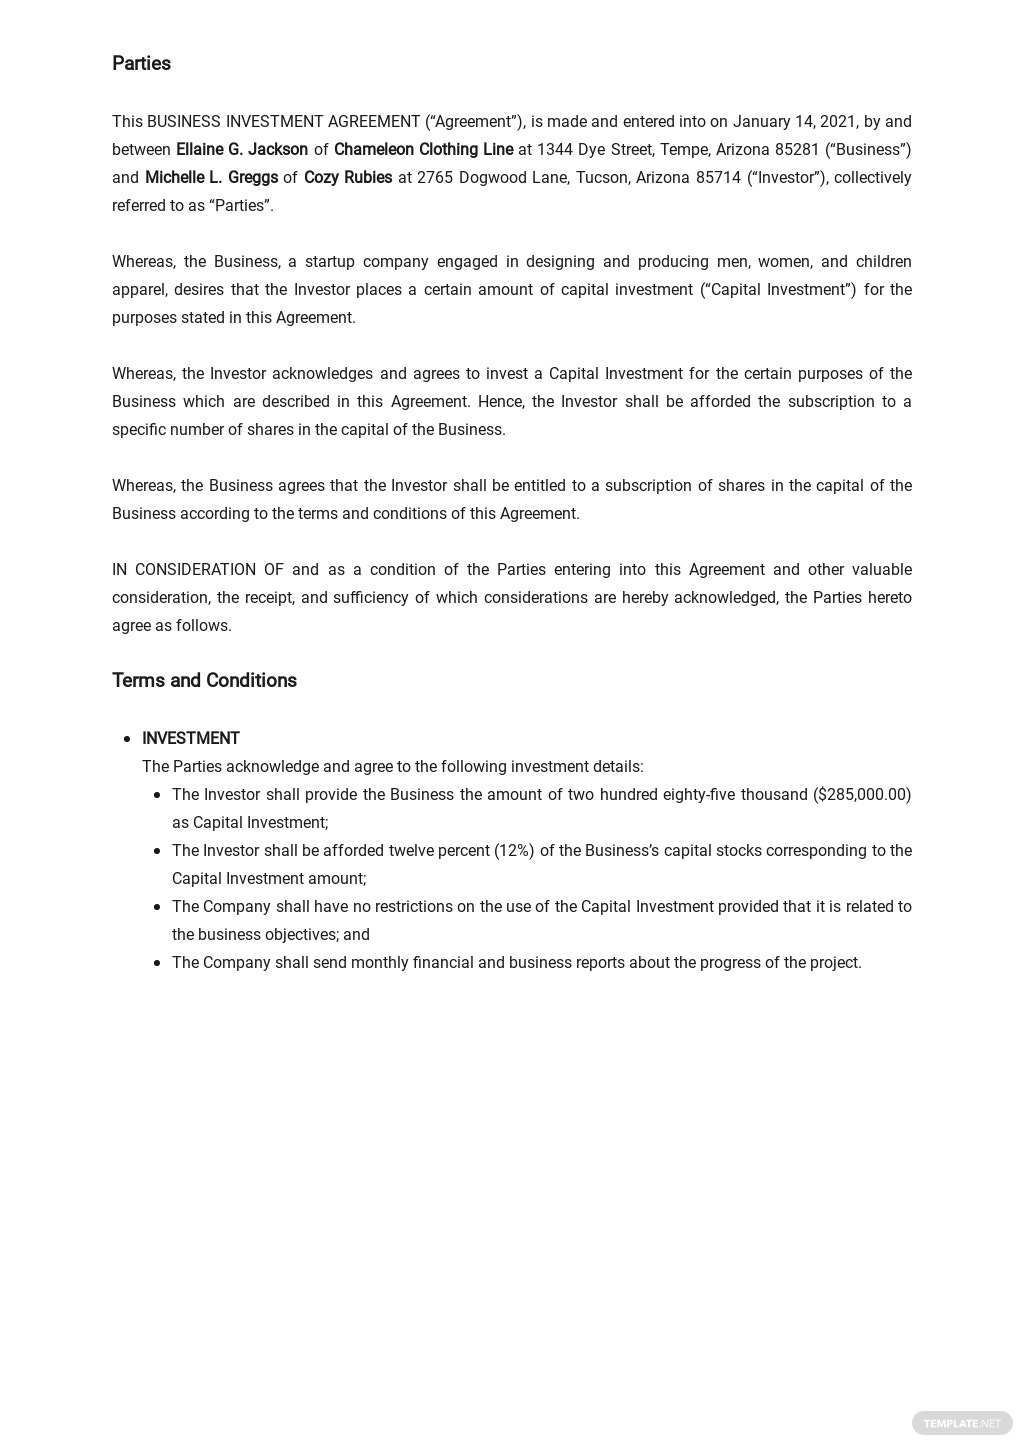 Business Investment Agreement Template 1.jpe